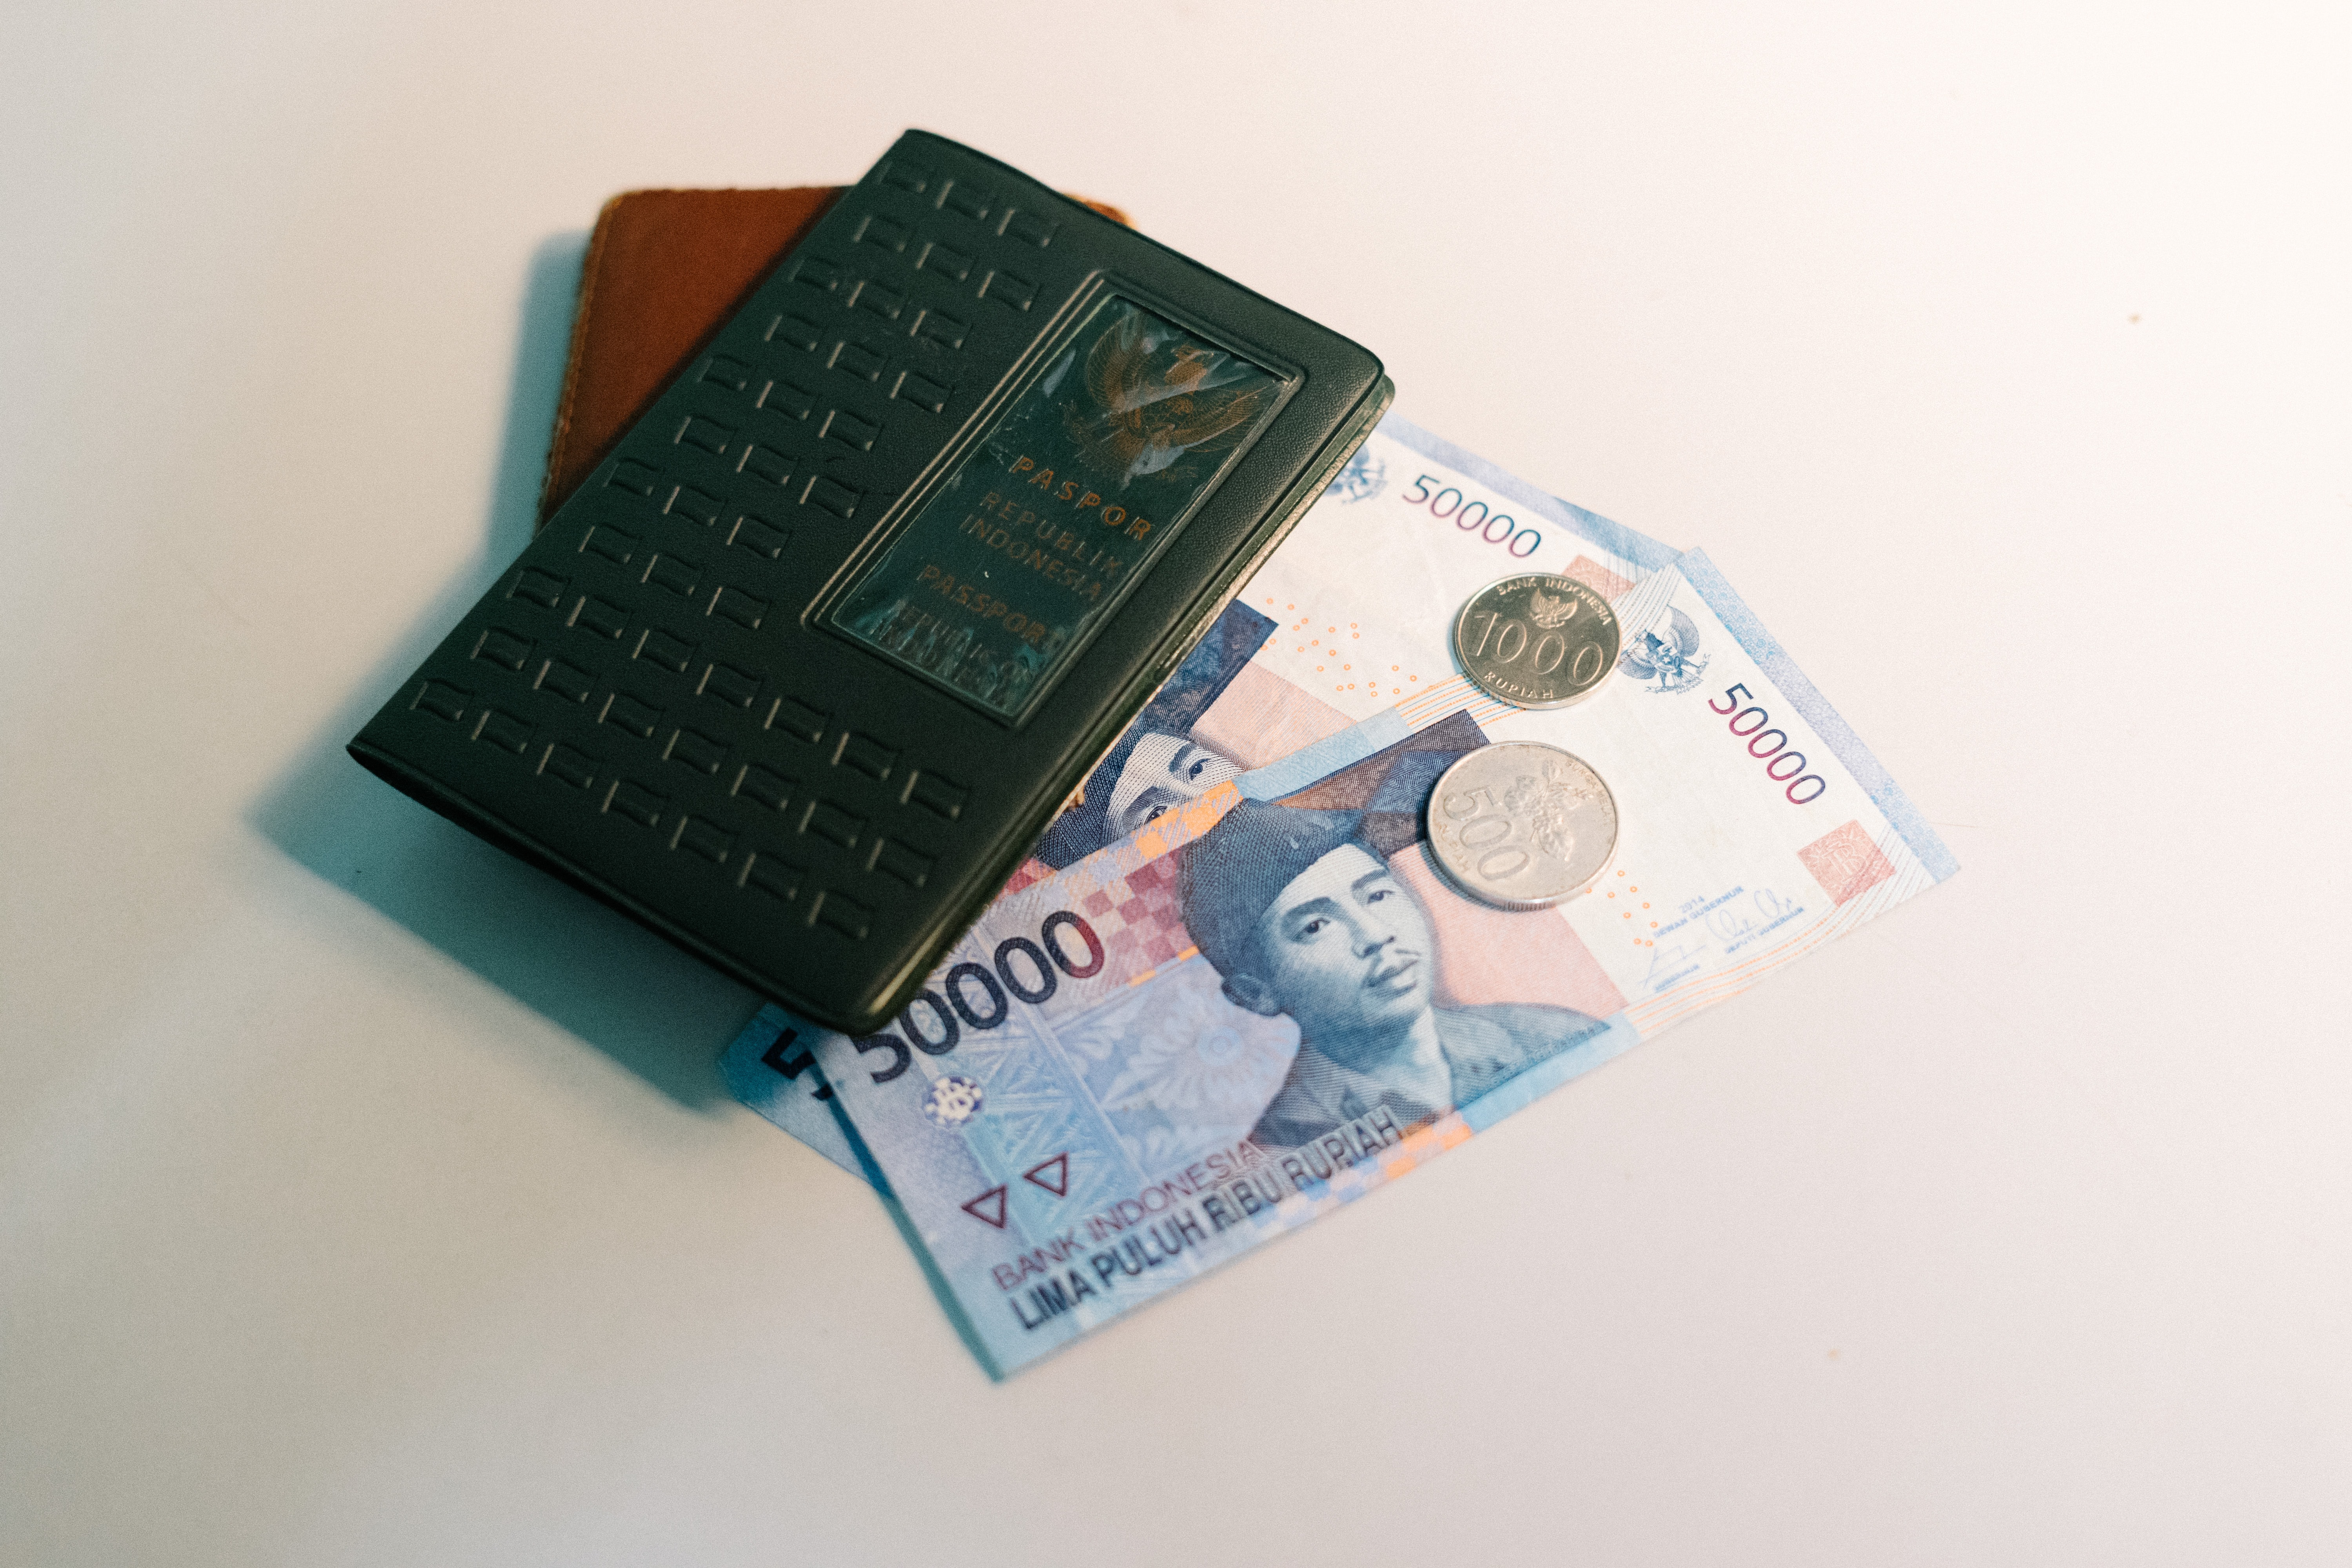 banknote and Passport on white panel